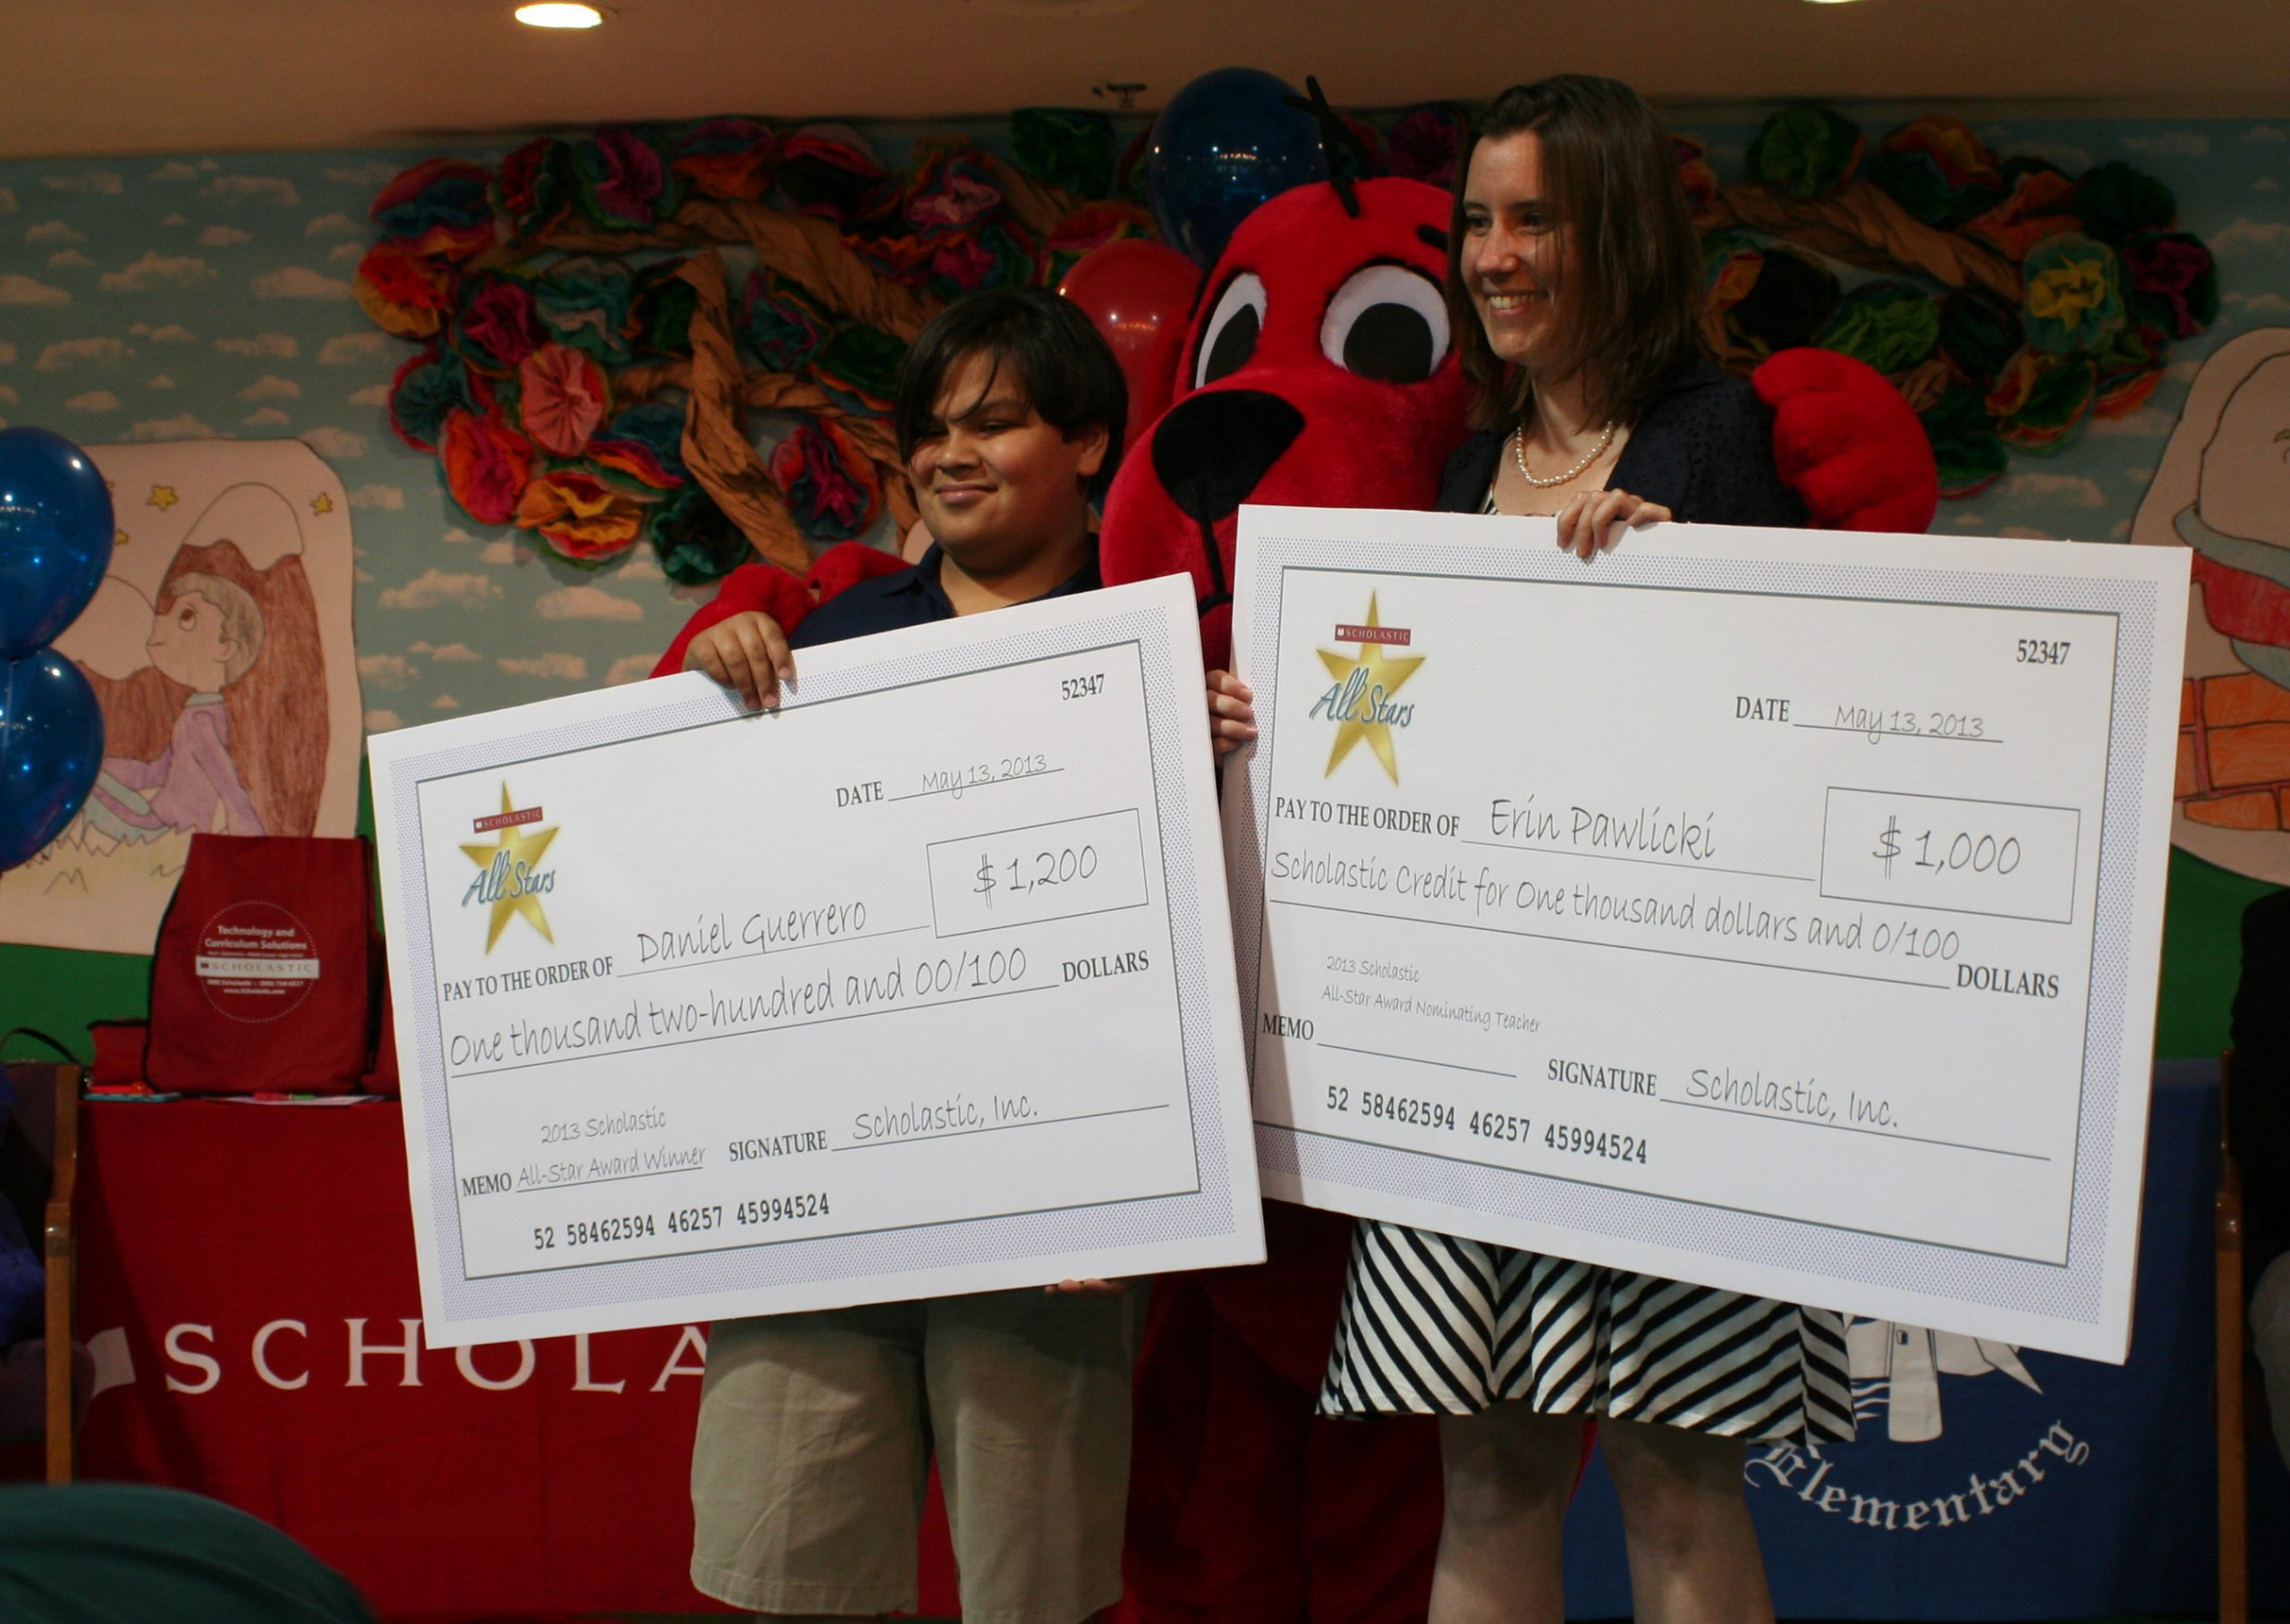 Daniel Guerrero, left, Scholastics All-Star, received $1,200. His reading teacher, Erin Pawlicki was given a $1,000 voucher for Scholastics products to use in her classroom. Photo courtesy of SAISD